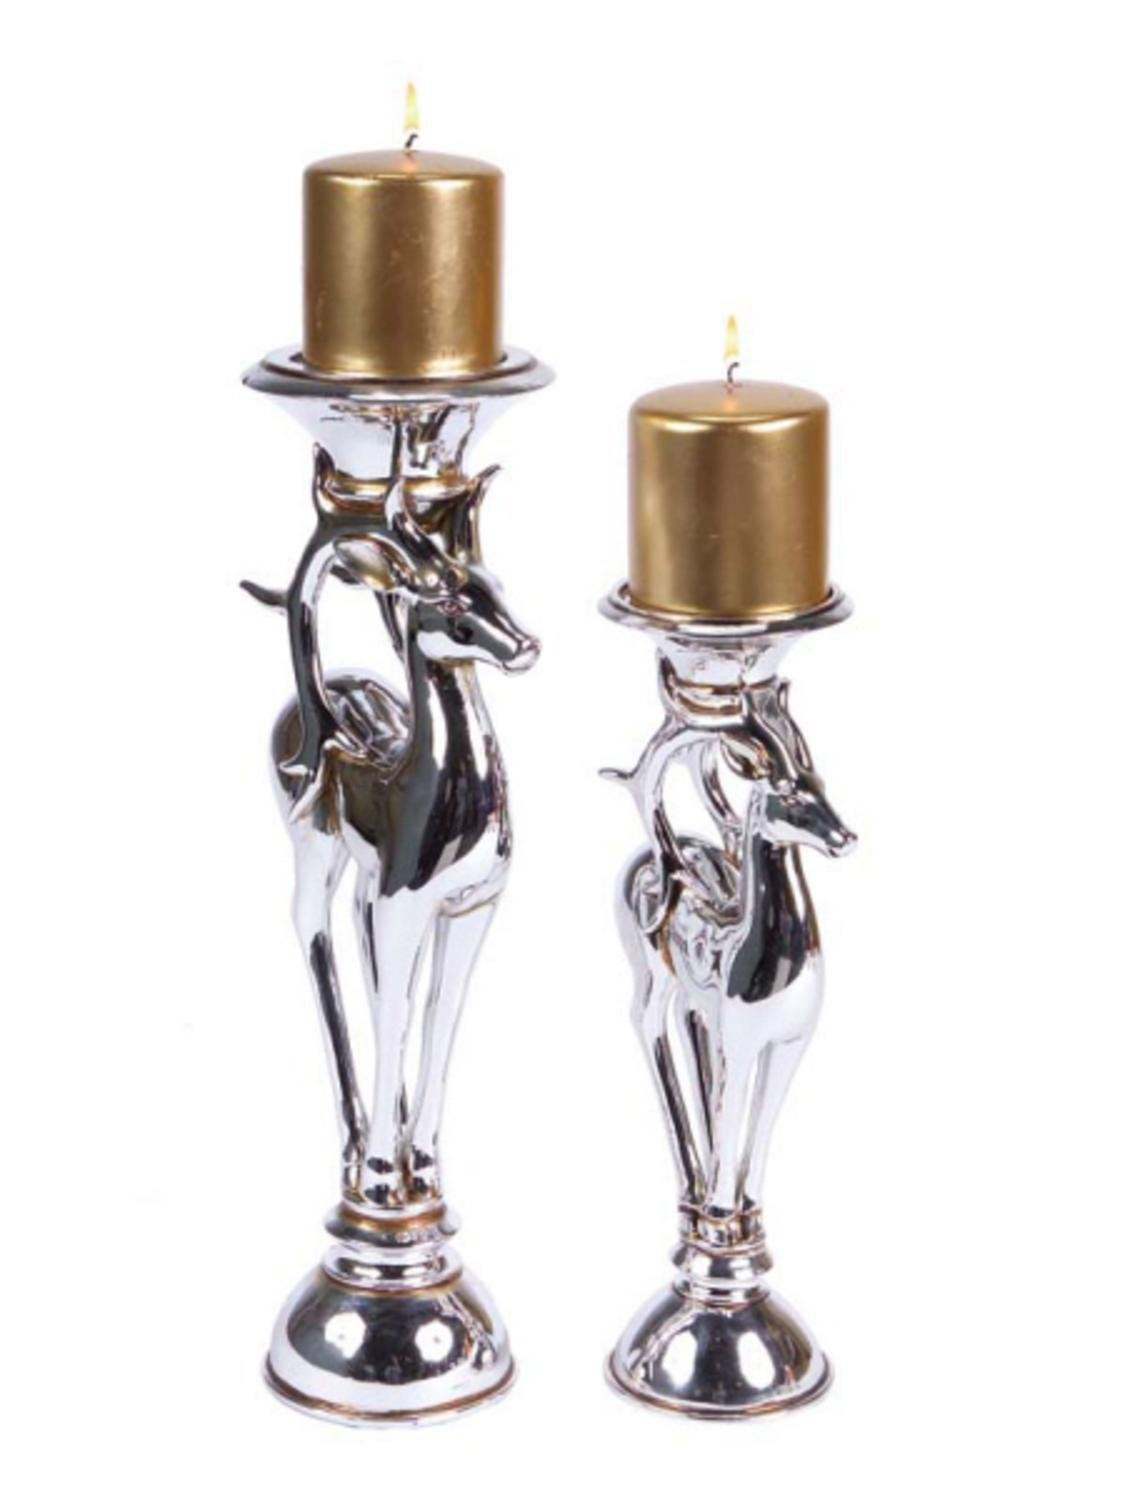 Porcelain Silver Reindeer Christmas Pillar Candle Holders Set of 2 #christmascandle| ChristmasTablescapeDecor.com